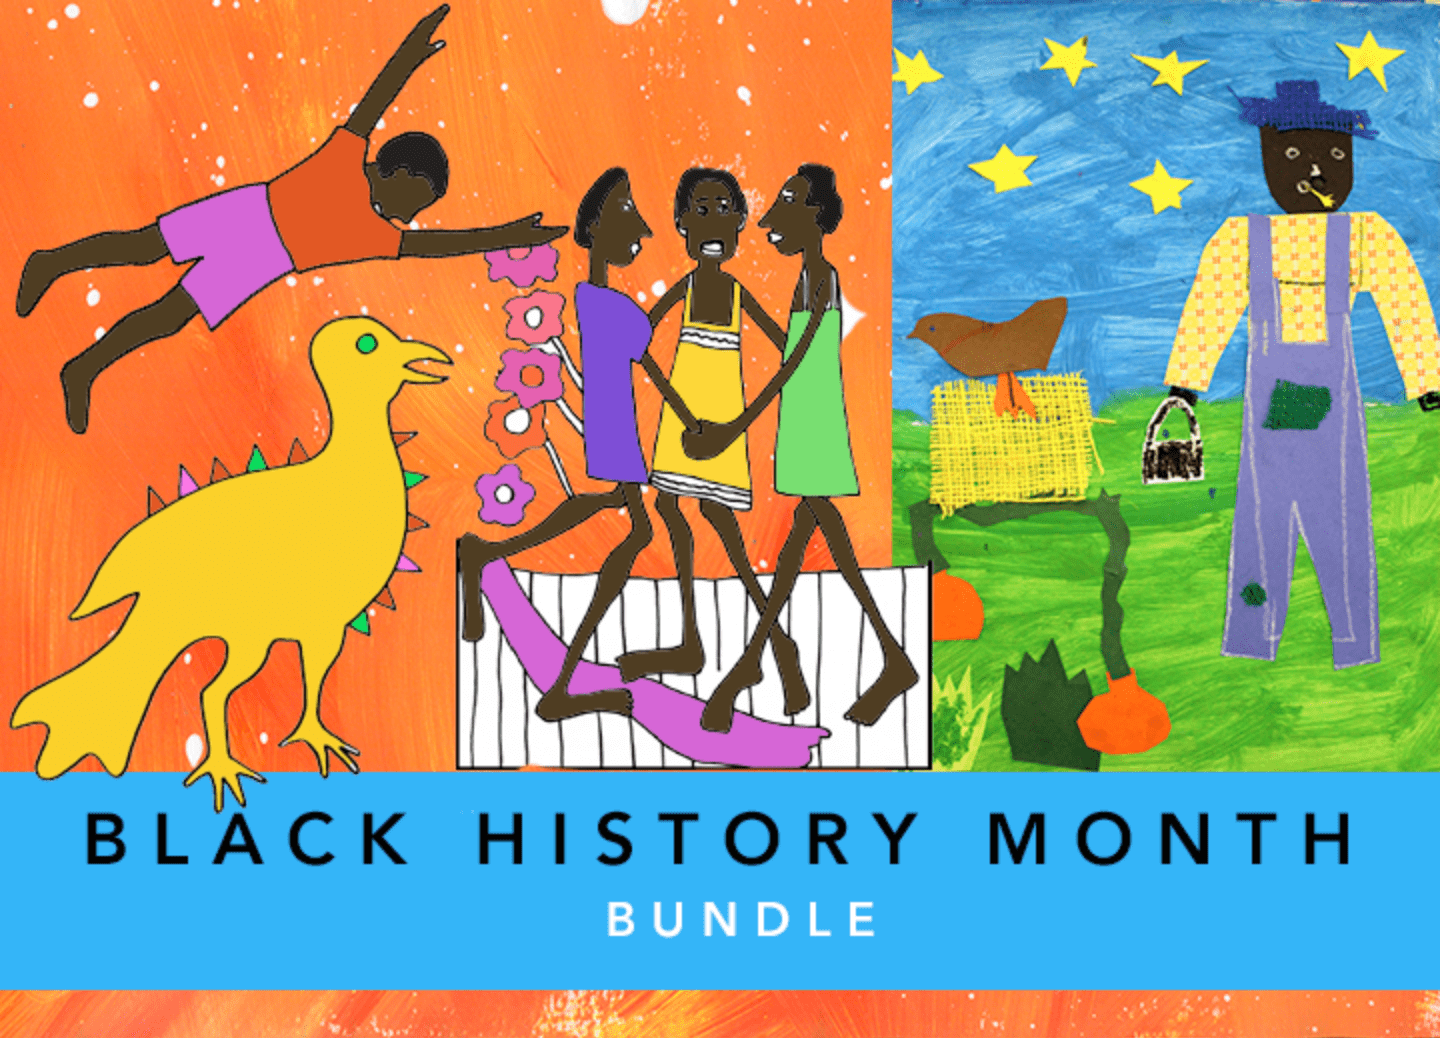 Black History Month bundle for the Sparklers Club